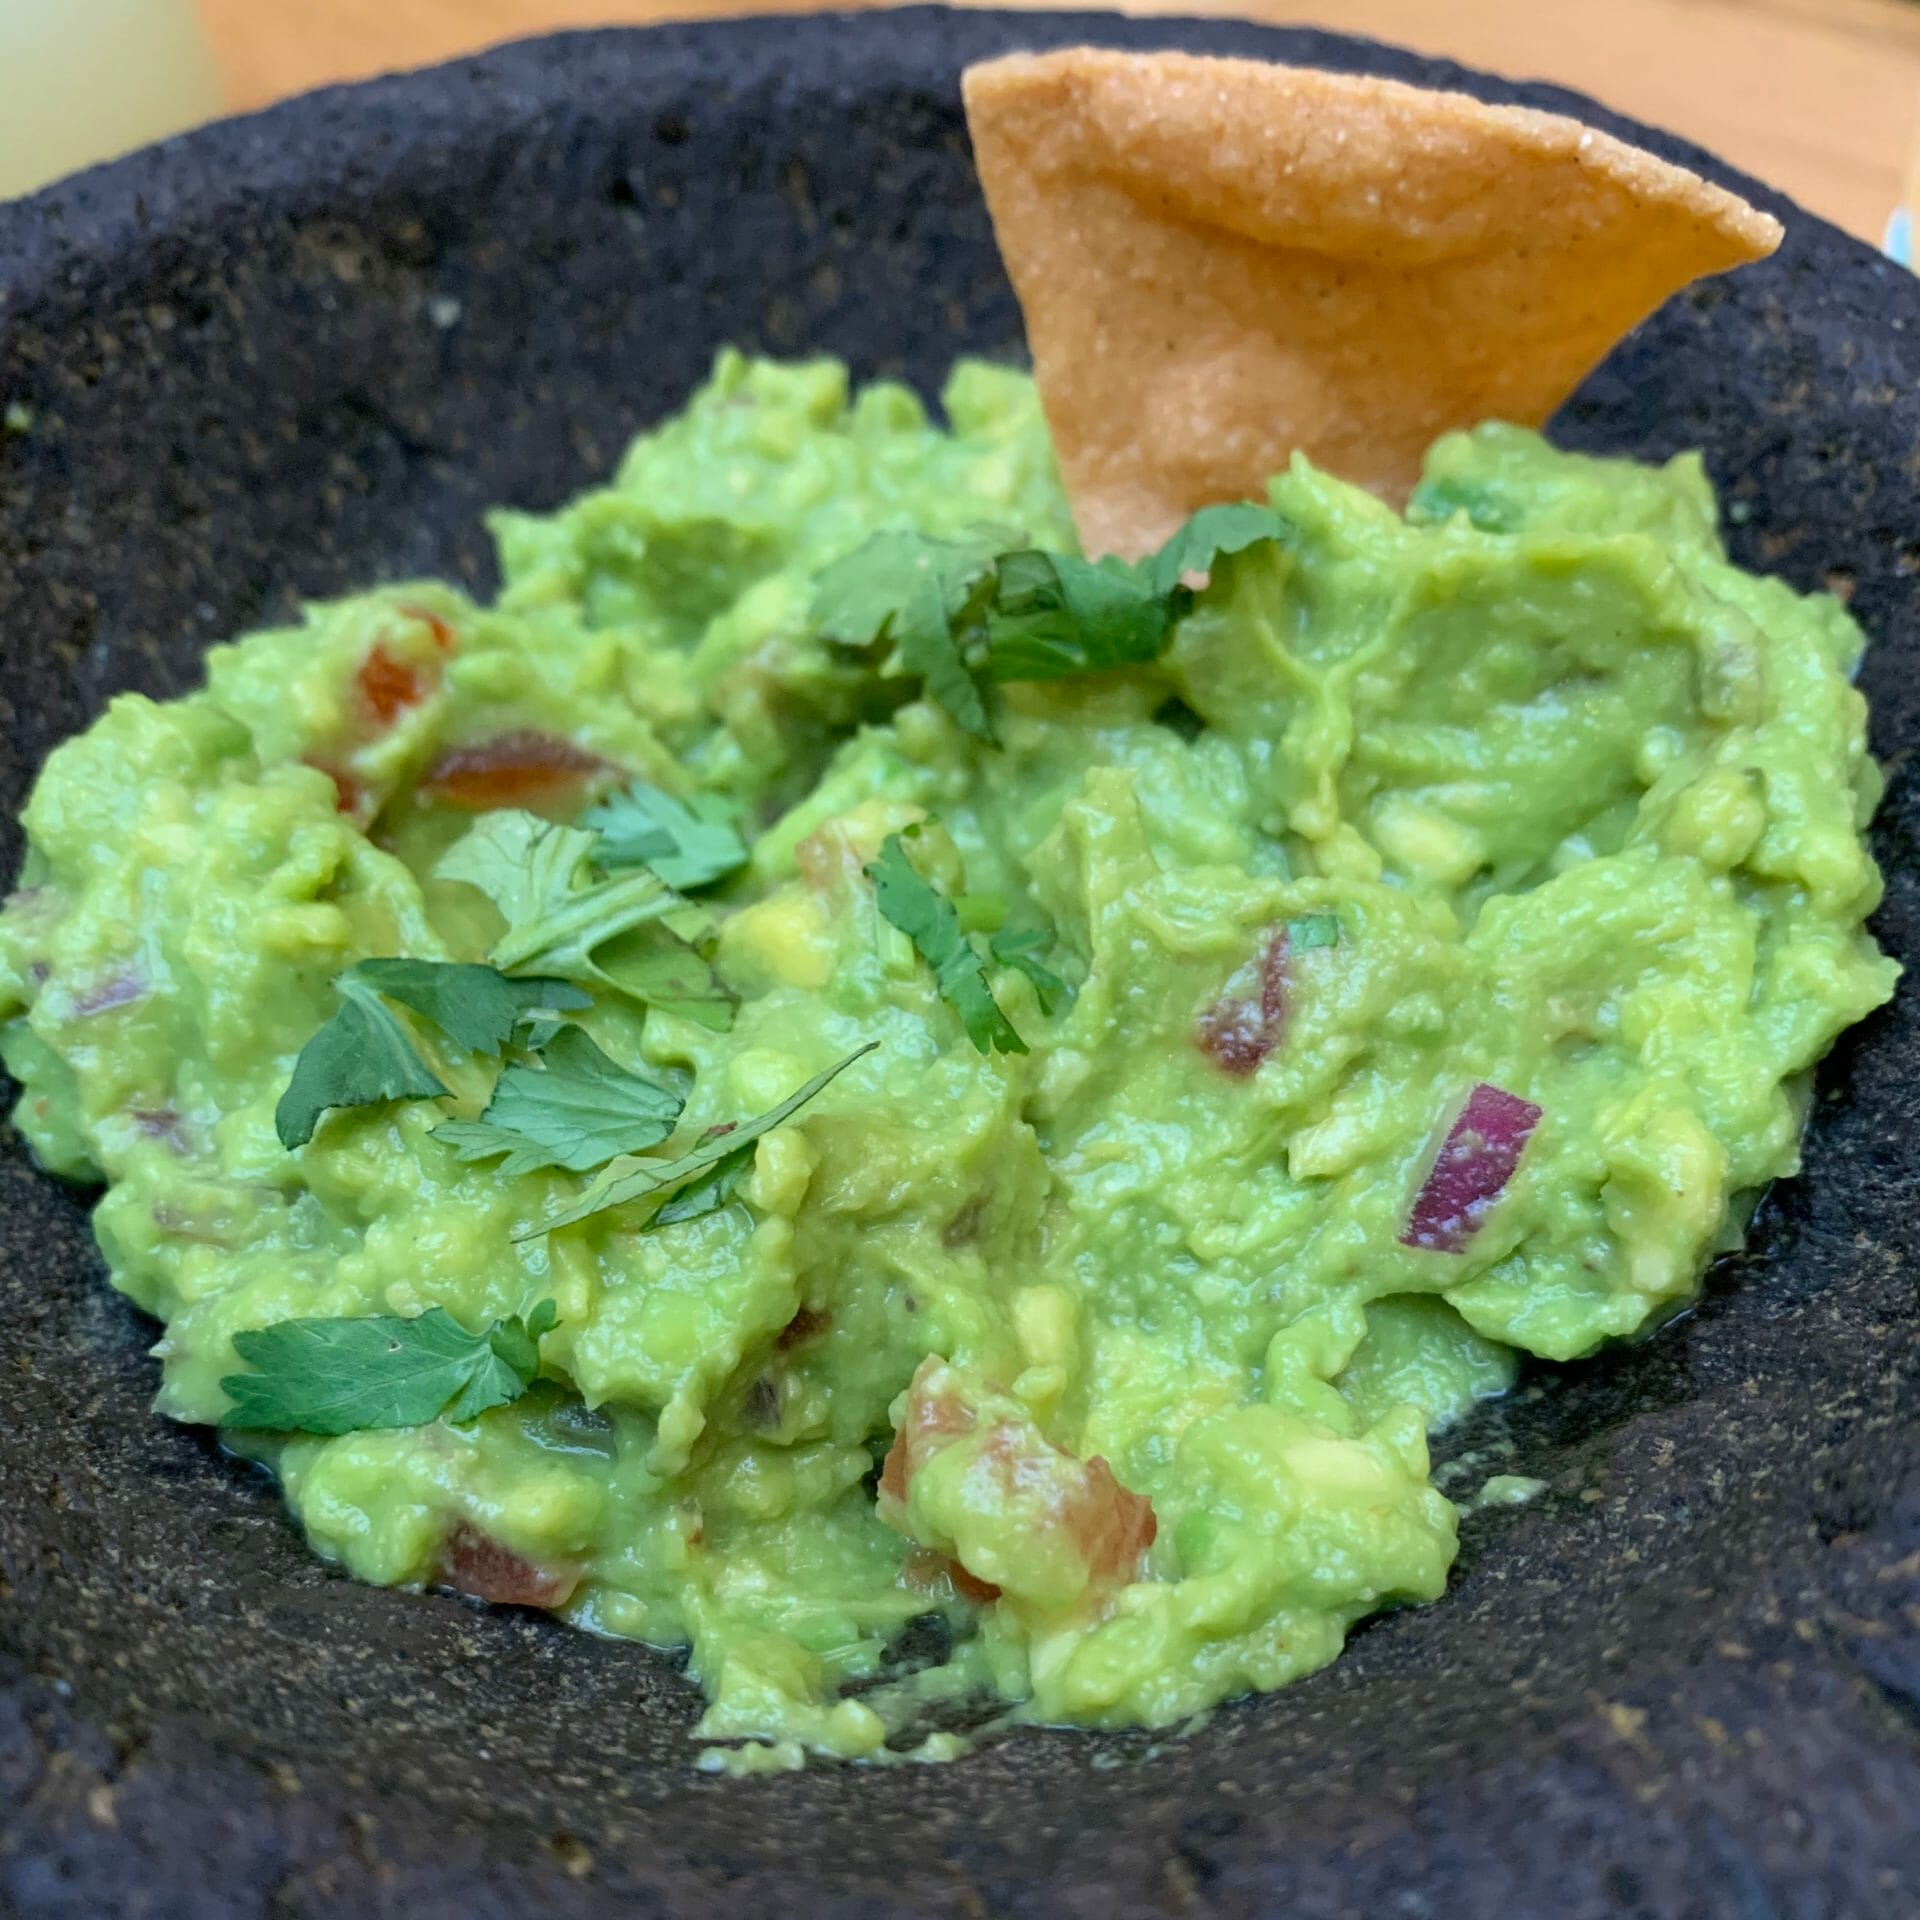 Guacamole with a few chips